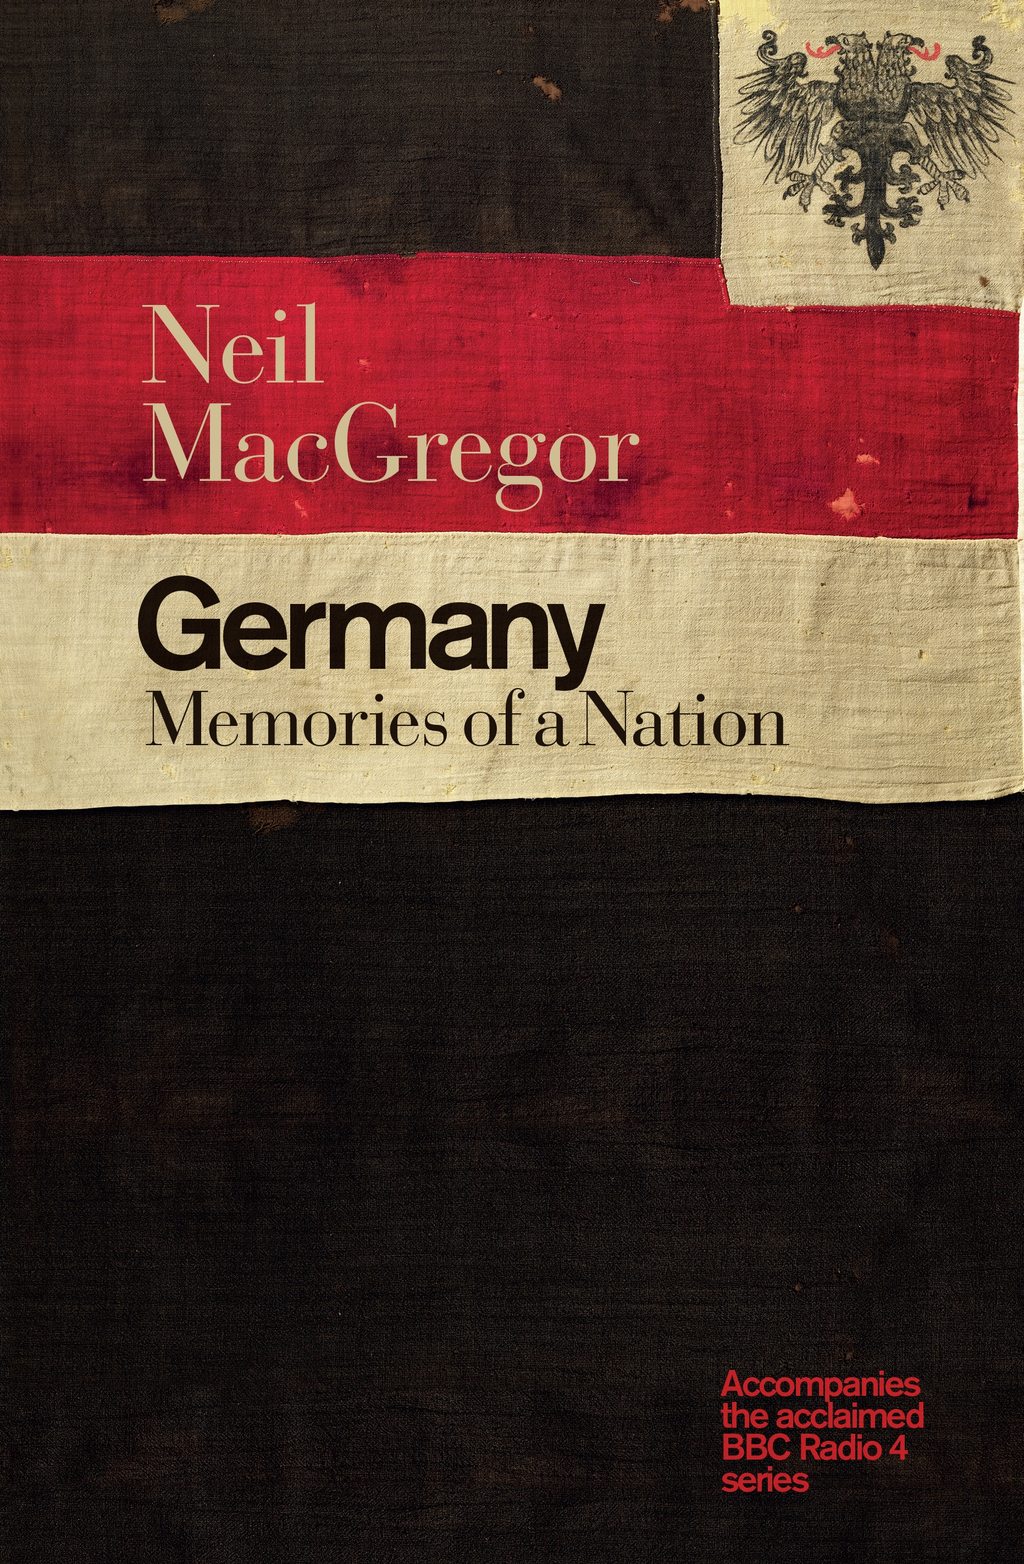 Germany Memories of a Nation